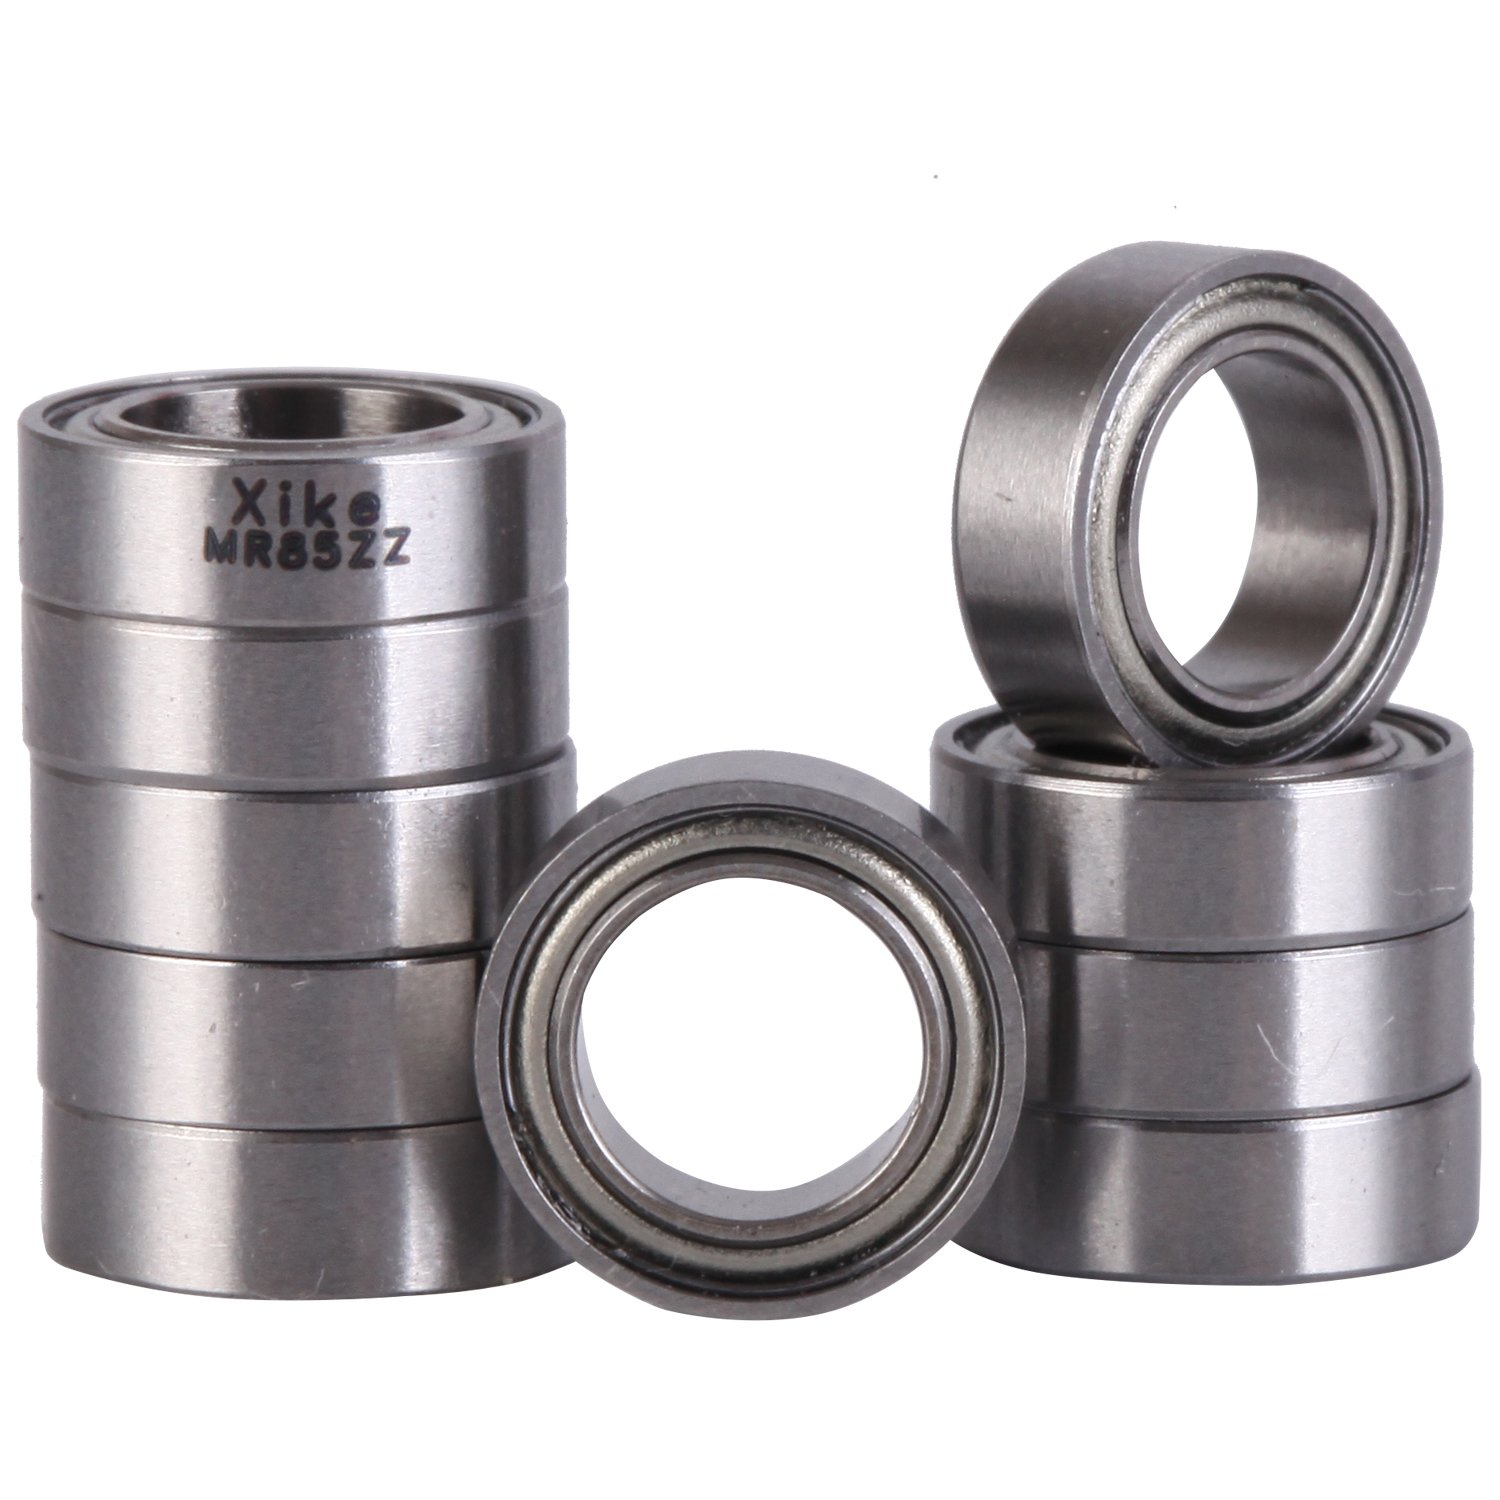 10 Pcs - MR85ZZ 5x8x2.5mm Shielded Precision Ball Bearing. Replace Traxxas 5114, TLR TLR23700, Axial AXA1213, Losi LOSB1728, HPI B020, Tamiya 42111. - RC Cars and Trucks Bearing.